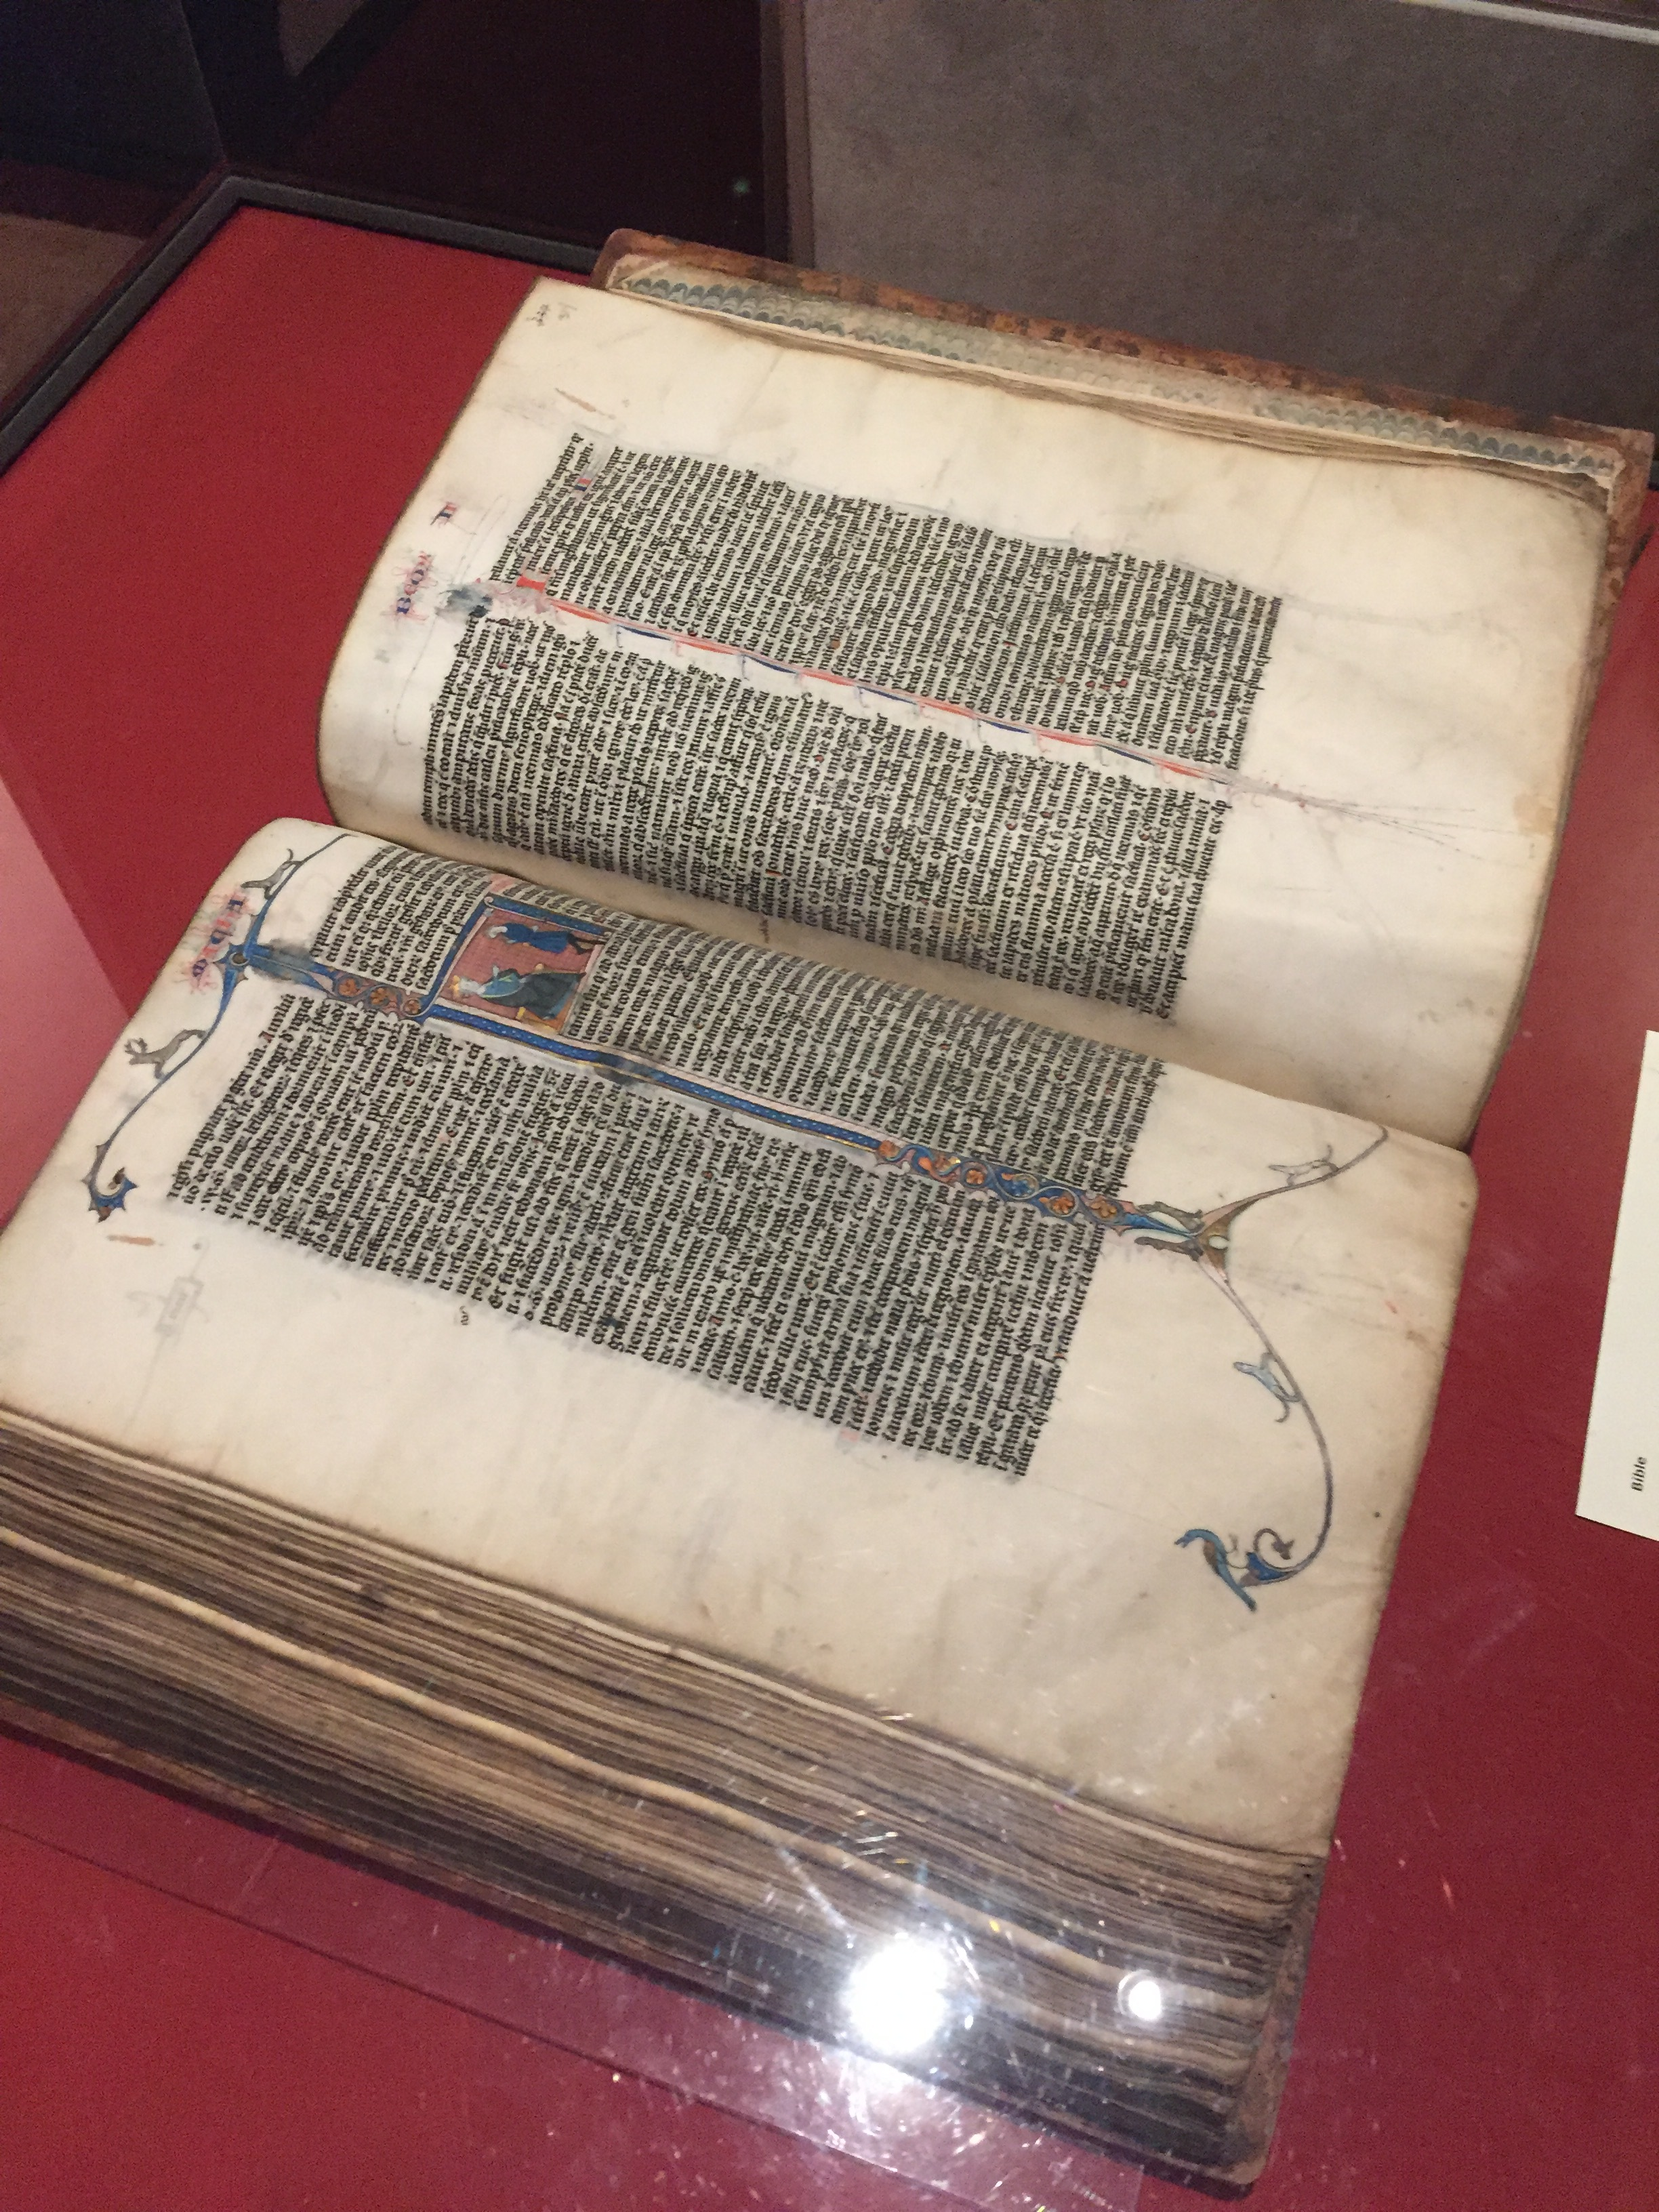 A medieval manuscript of the Bible from the 13th Century, Book of Kells exhibit, Trinity College, Dublin.